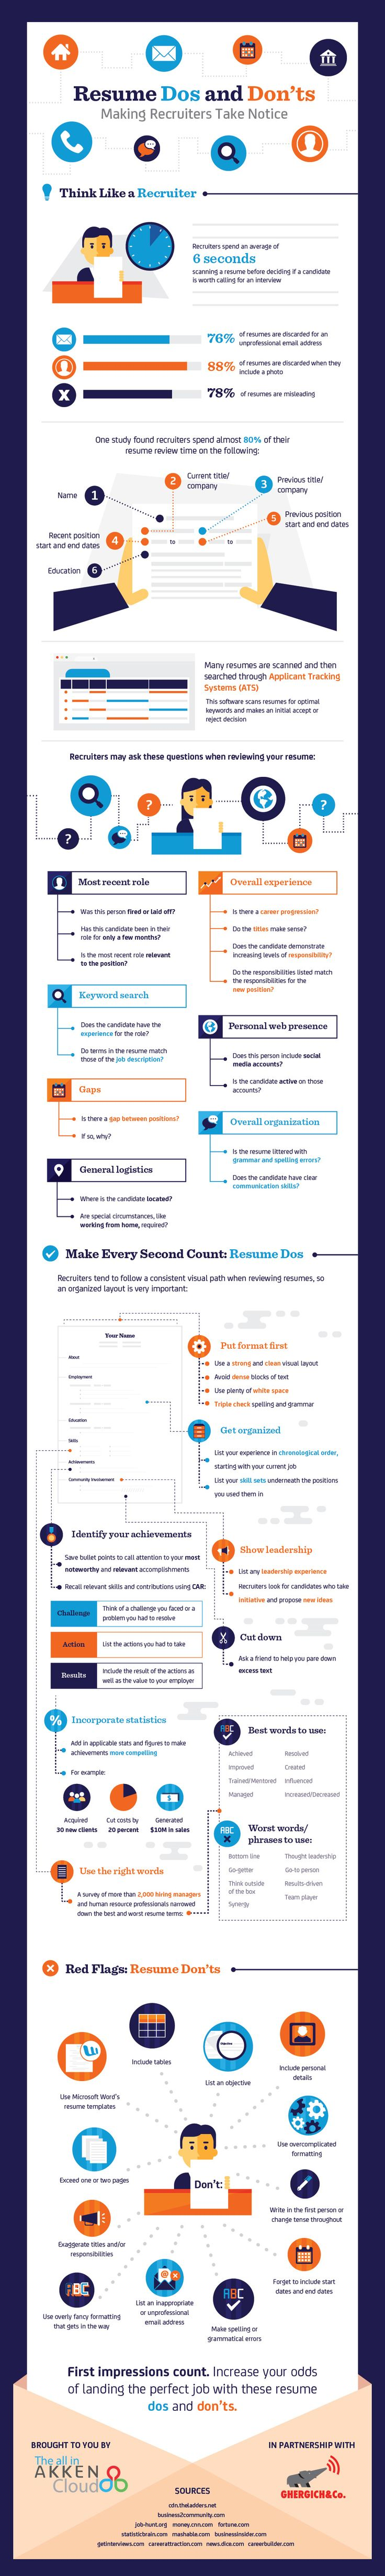 Resume Dos and Don'ts: Making Recruiters Take Notice #infographic #Resume #Career